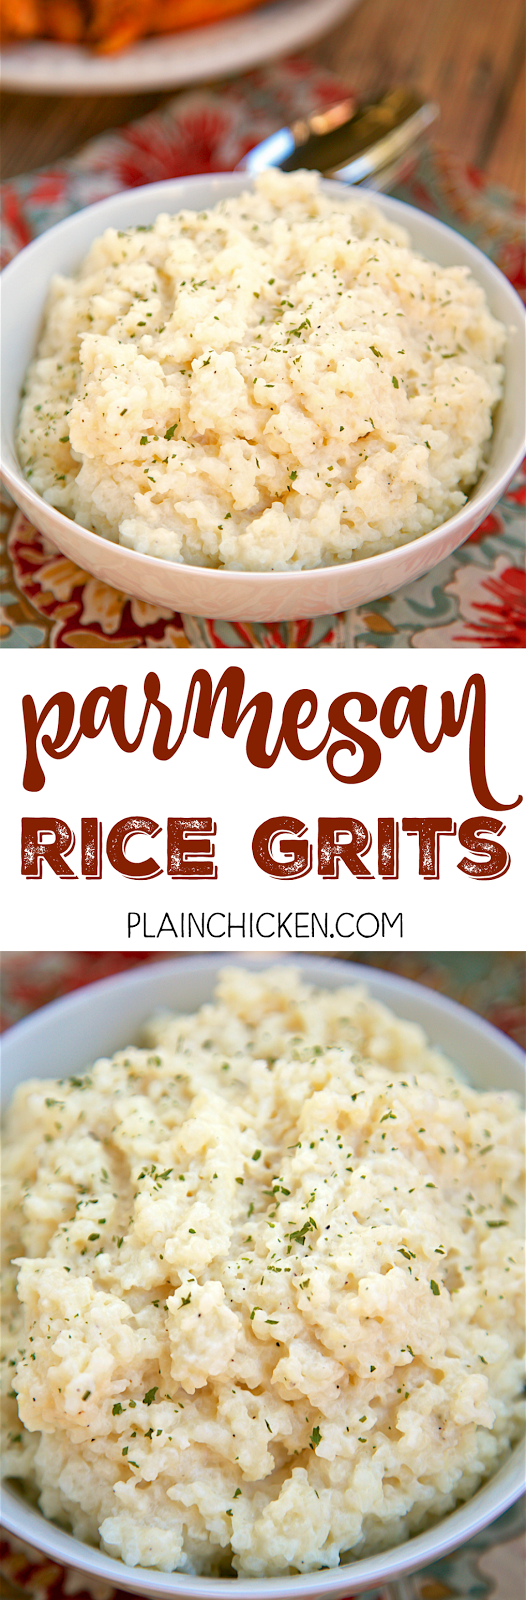 "Parmesan Rice Grits - SO easy and delicious! Rice grits, chicken broth, half and half, butter, parmesan cheese and rosemary. Dump everything in the pot, cook then stir in cheese and rosemary. SO good and creamy. My husband took one bite and said ""This is really, really good! Can we have them again tomorrow?"""